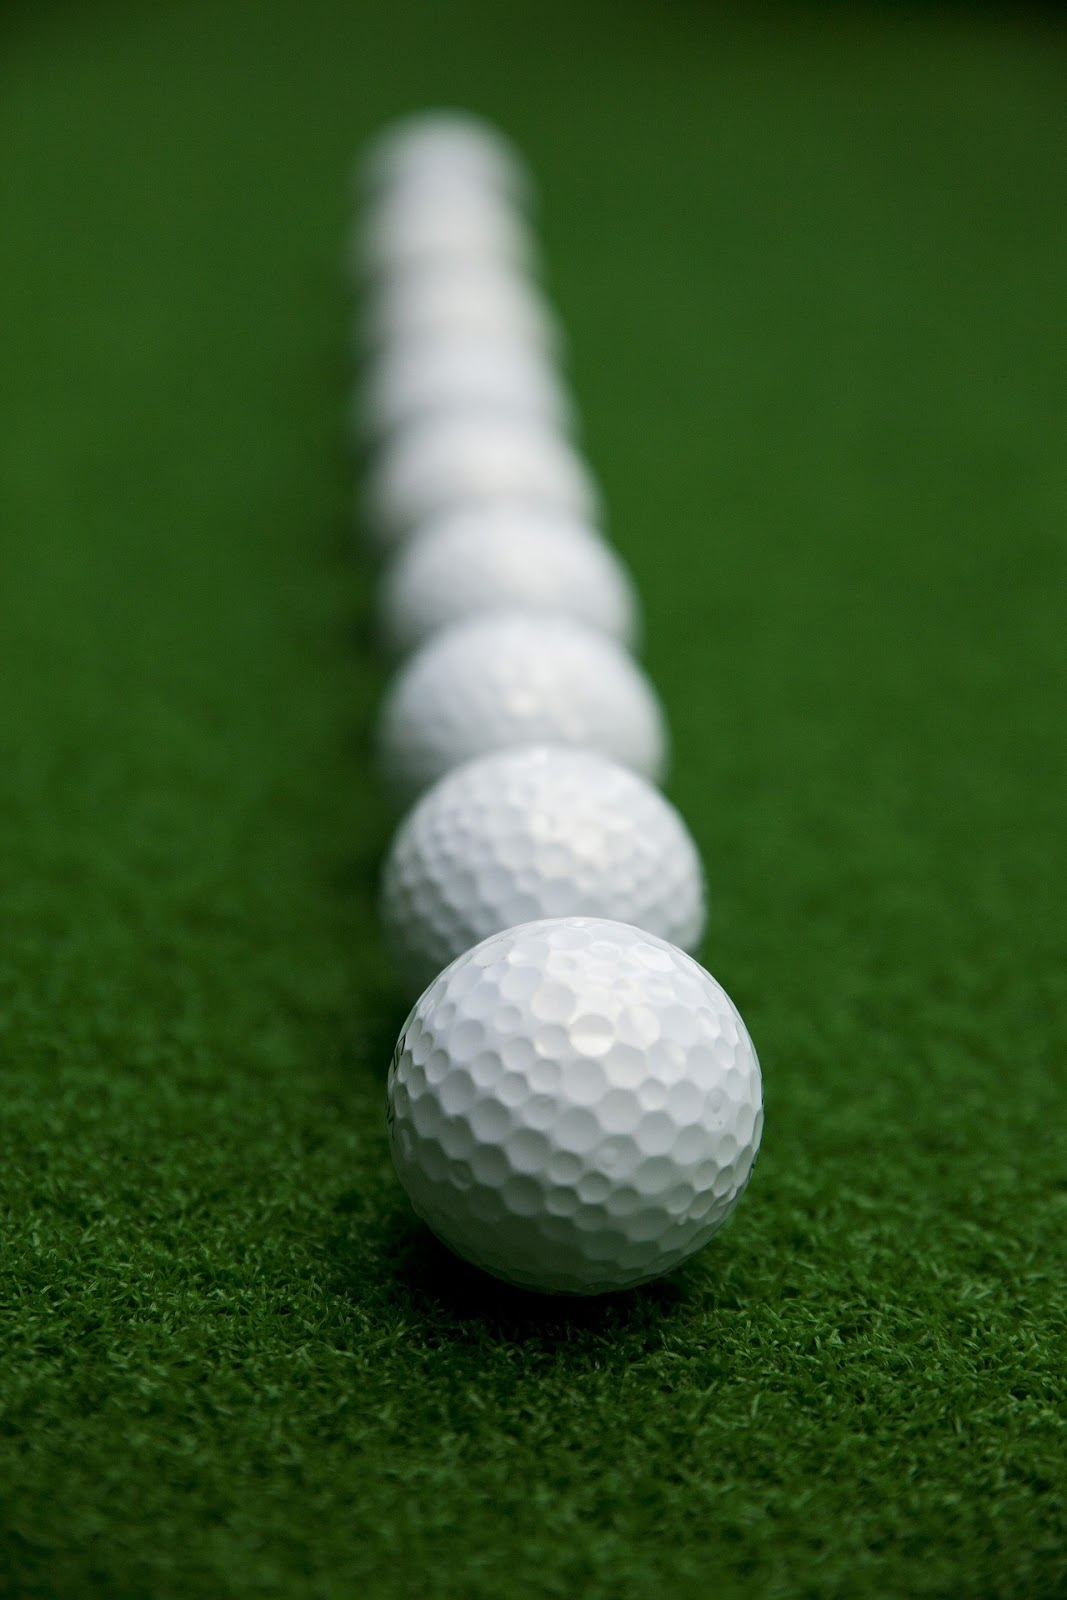 Are Used Golf Balls as Good as New?